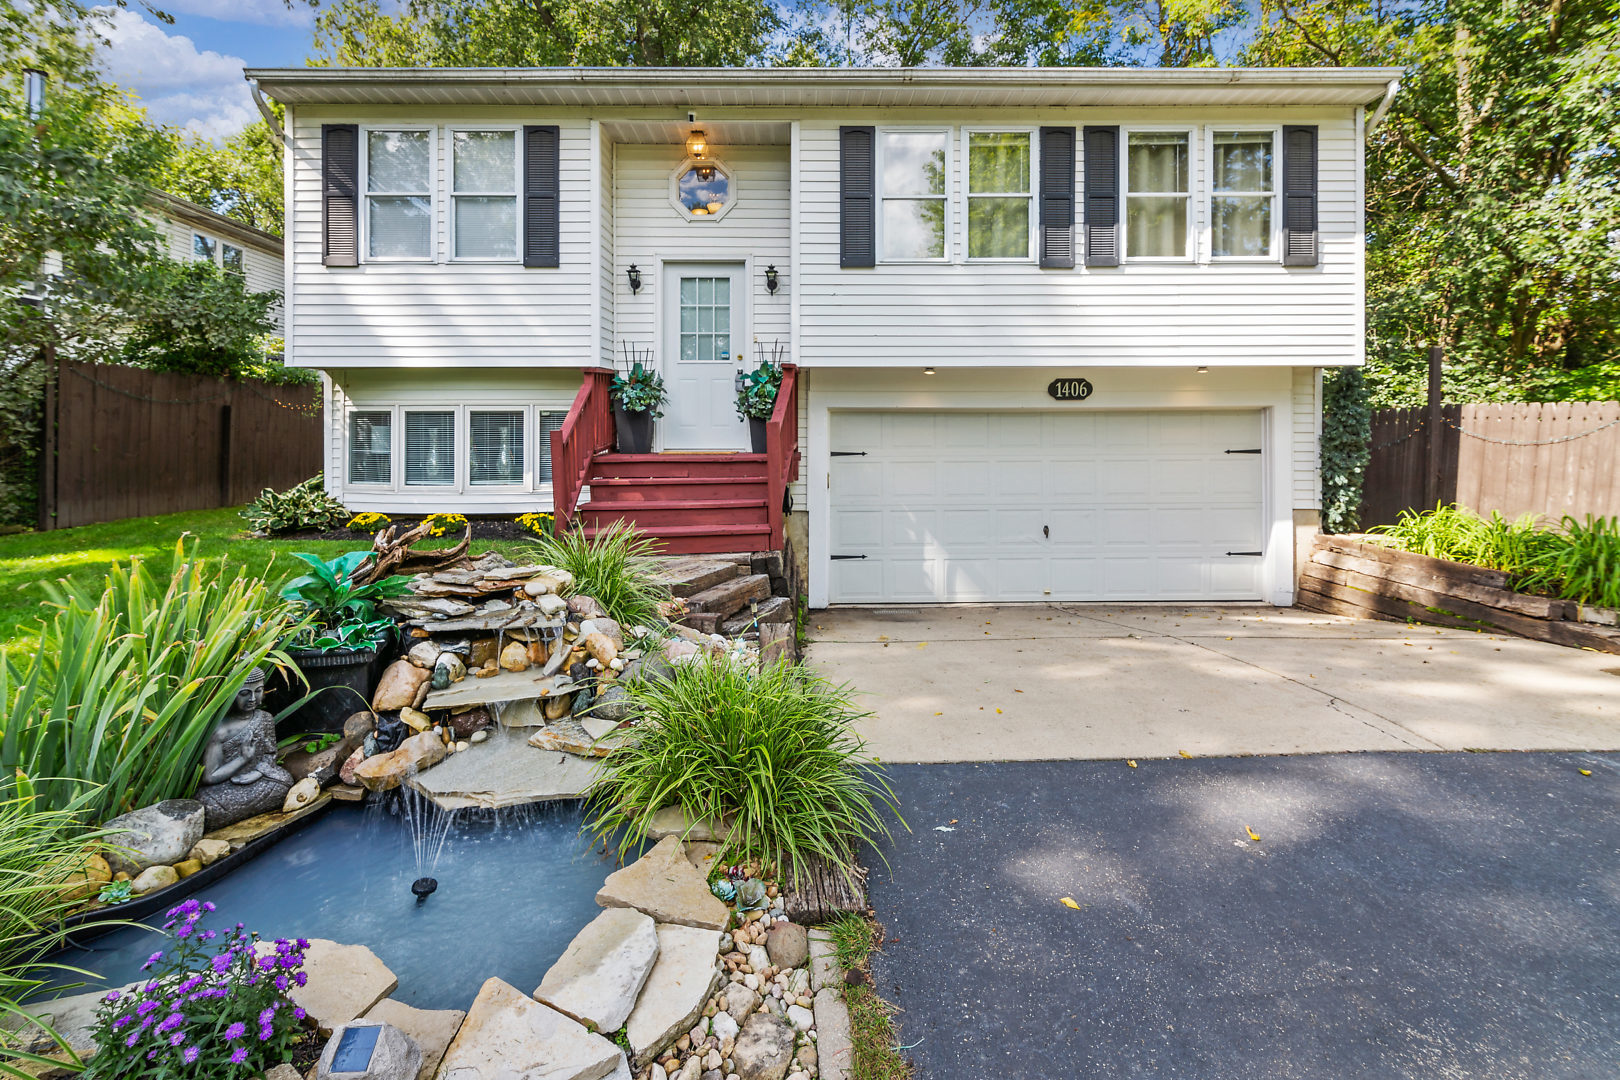 Photo for 1406 Cary Road, Algonquin, IL 60102 (MLS # 10529474)